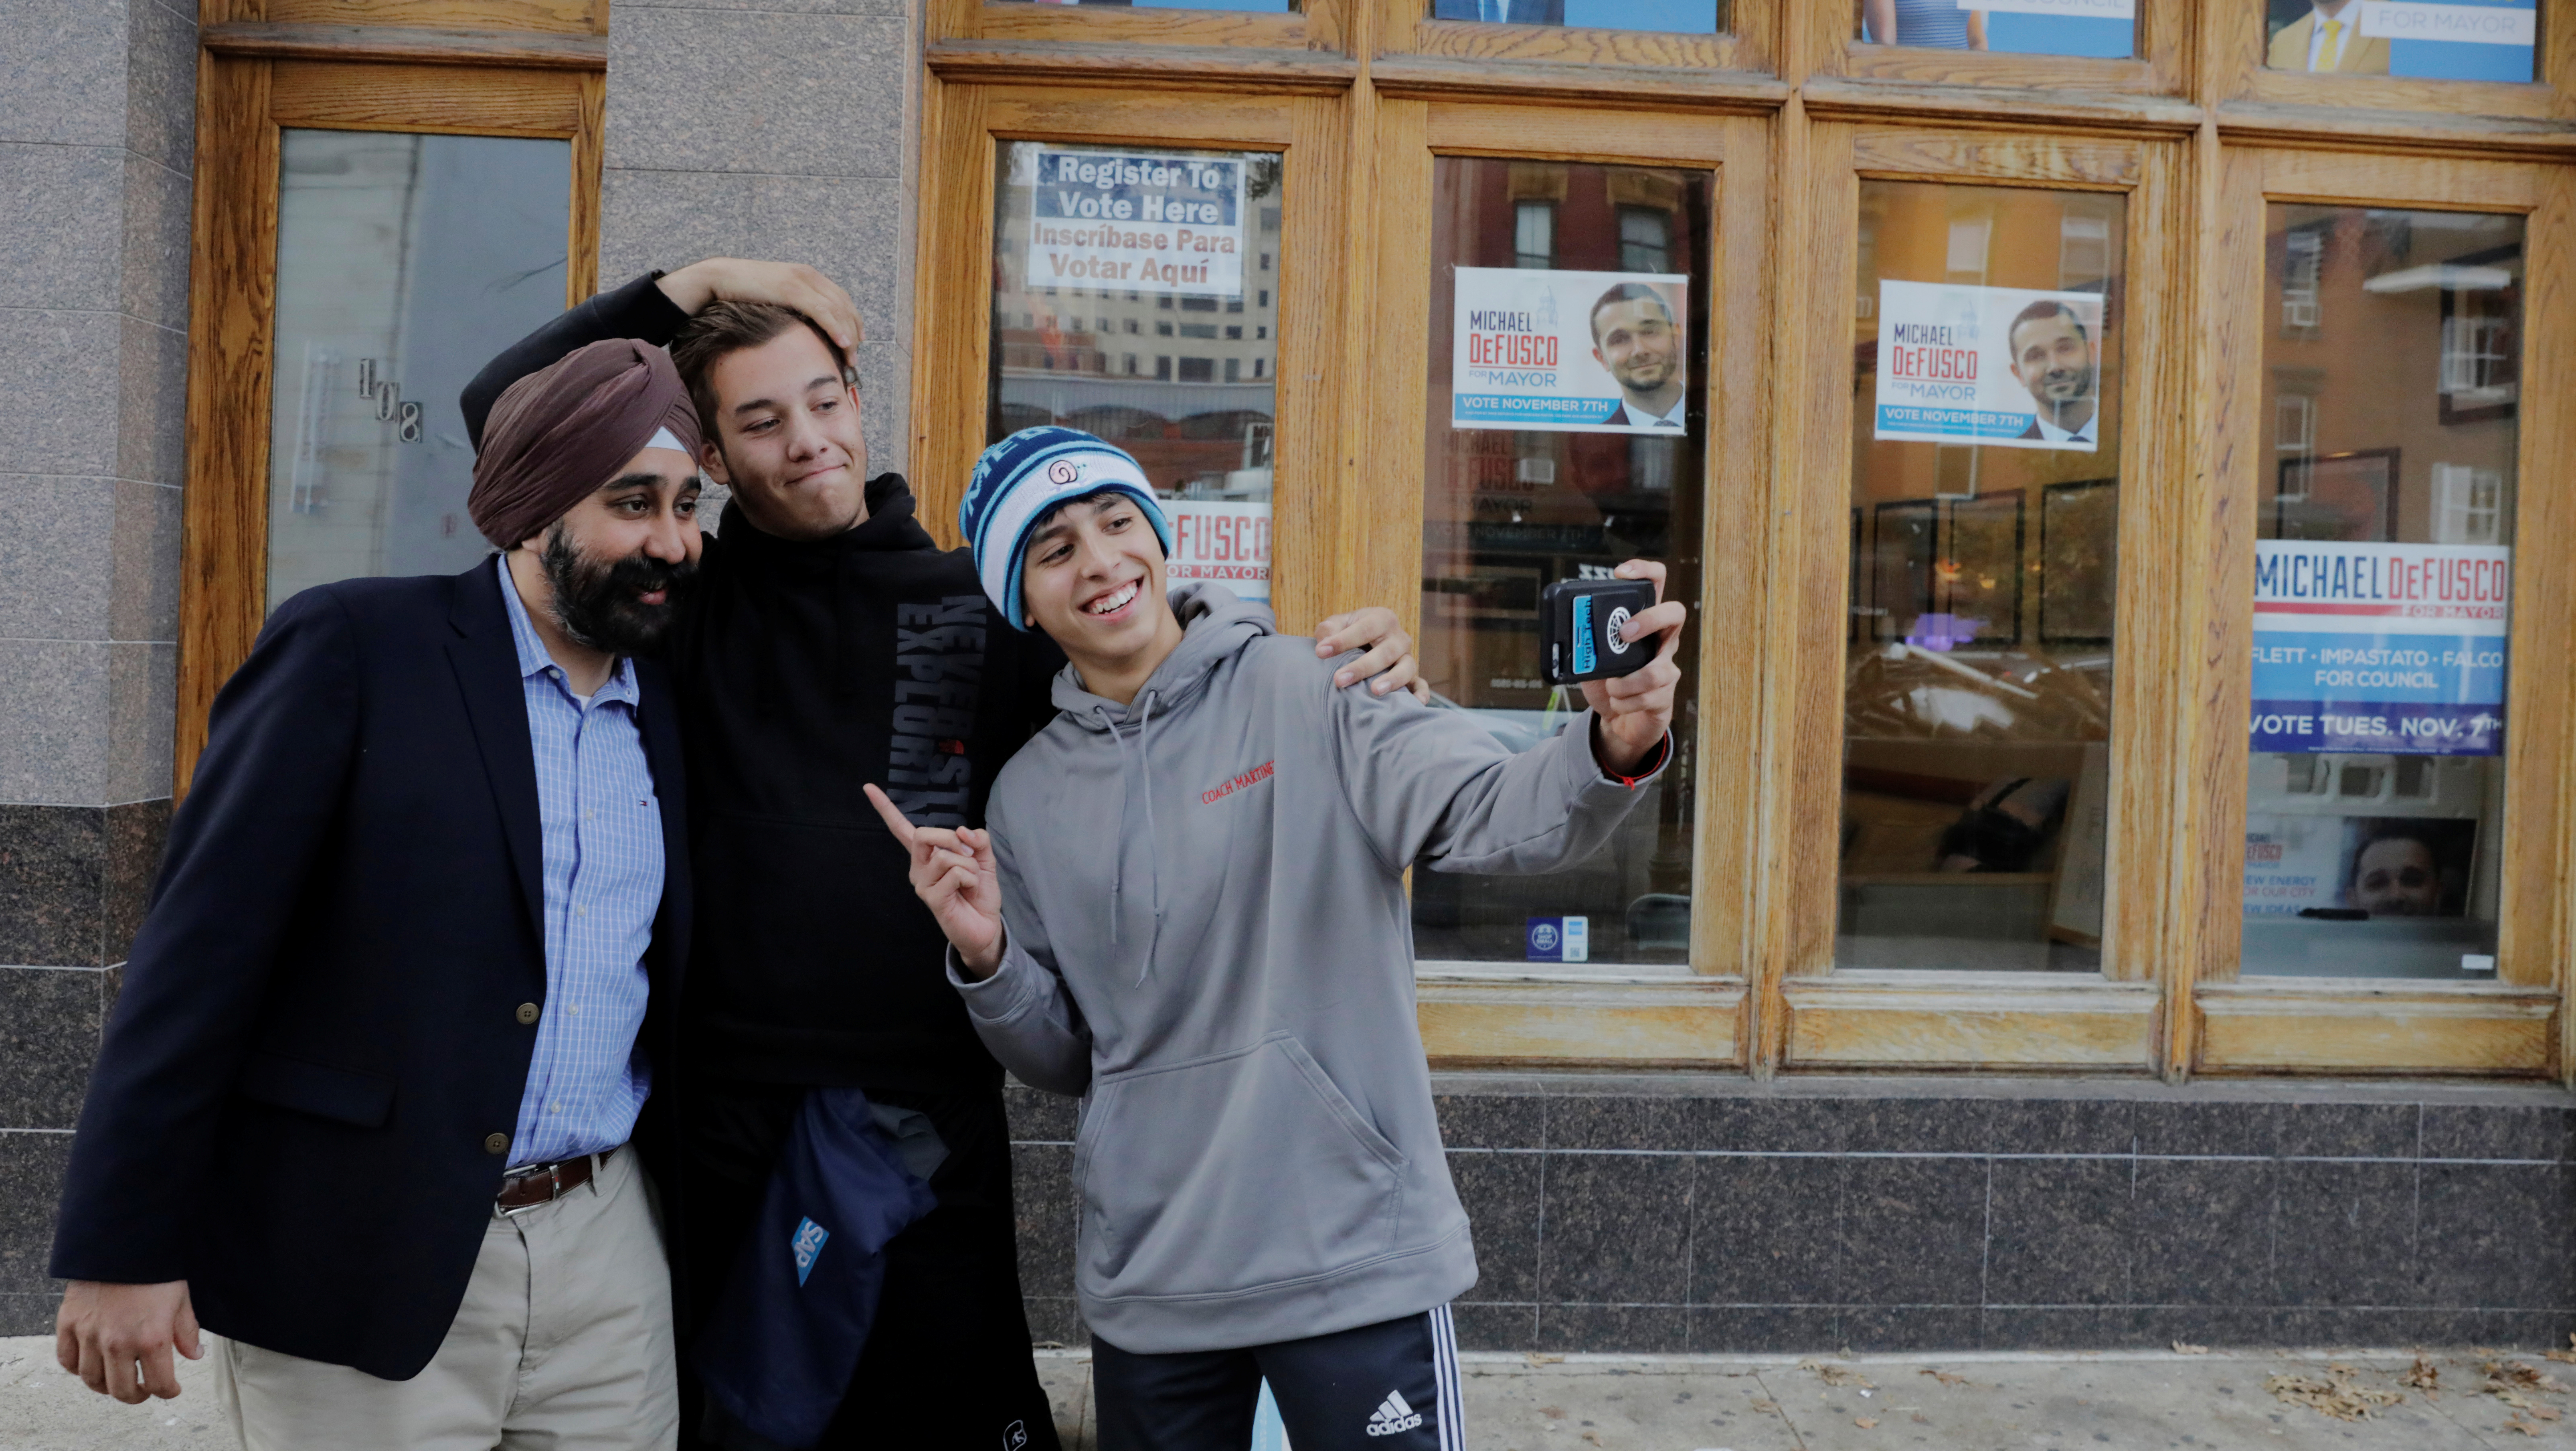 Hoboken, New Jersey Mayor-elect Ravi Bhalla greets supporters as he walks down the street in Hoboken, New Jersey, U.S., November 9, 2017. REUTERS/Lucas Jackson - RC1BFD91C9D0